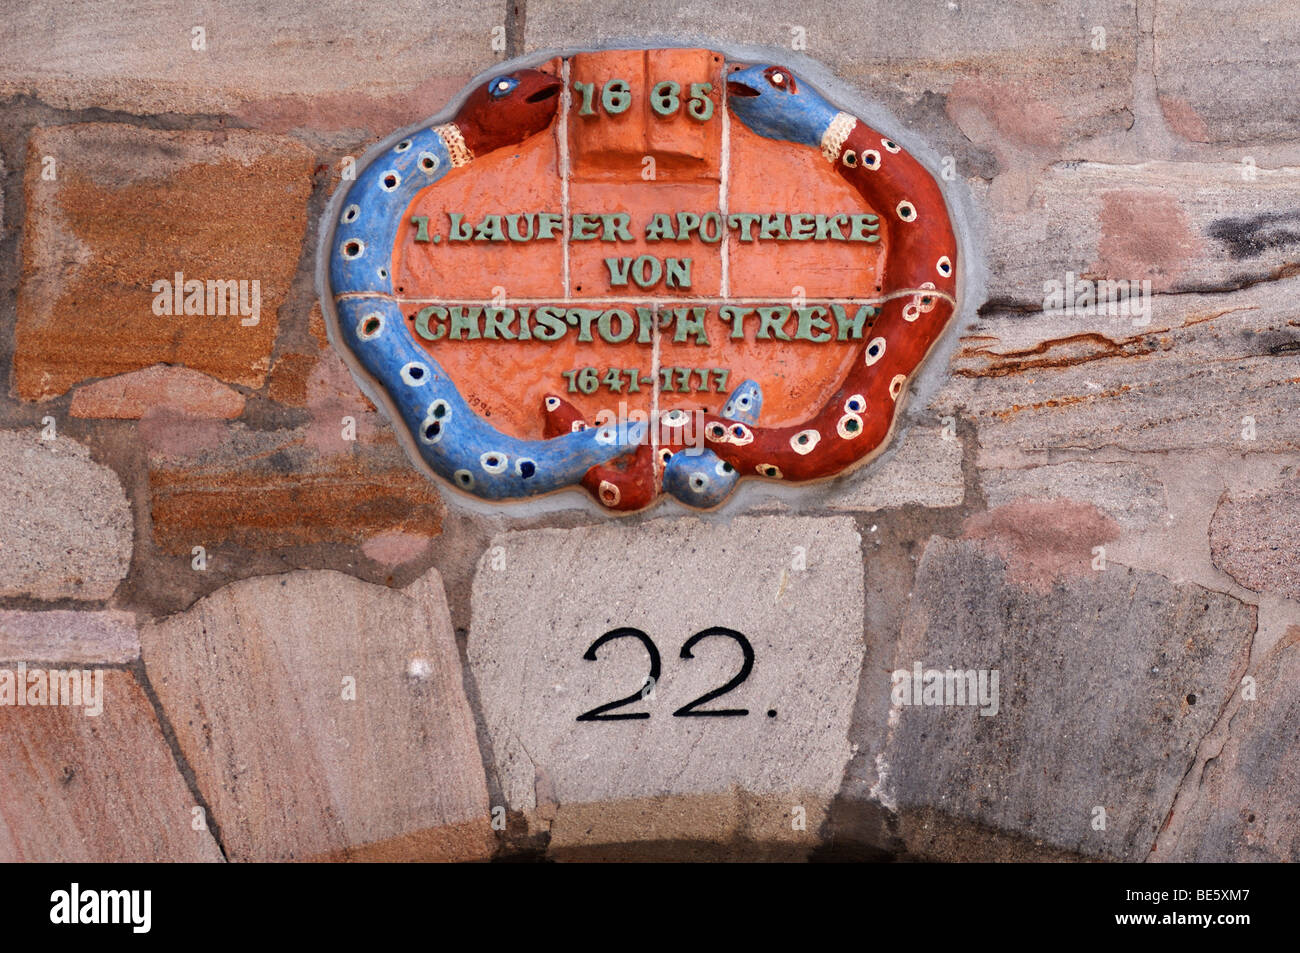 Old pharmacy sign from 1665 at a house wall, Lauf an der Pegnitz, Middle Franconia, Bavaria, Germany, Europe - Stock Image